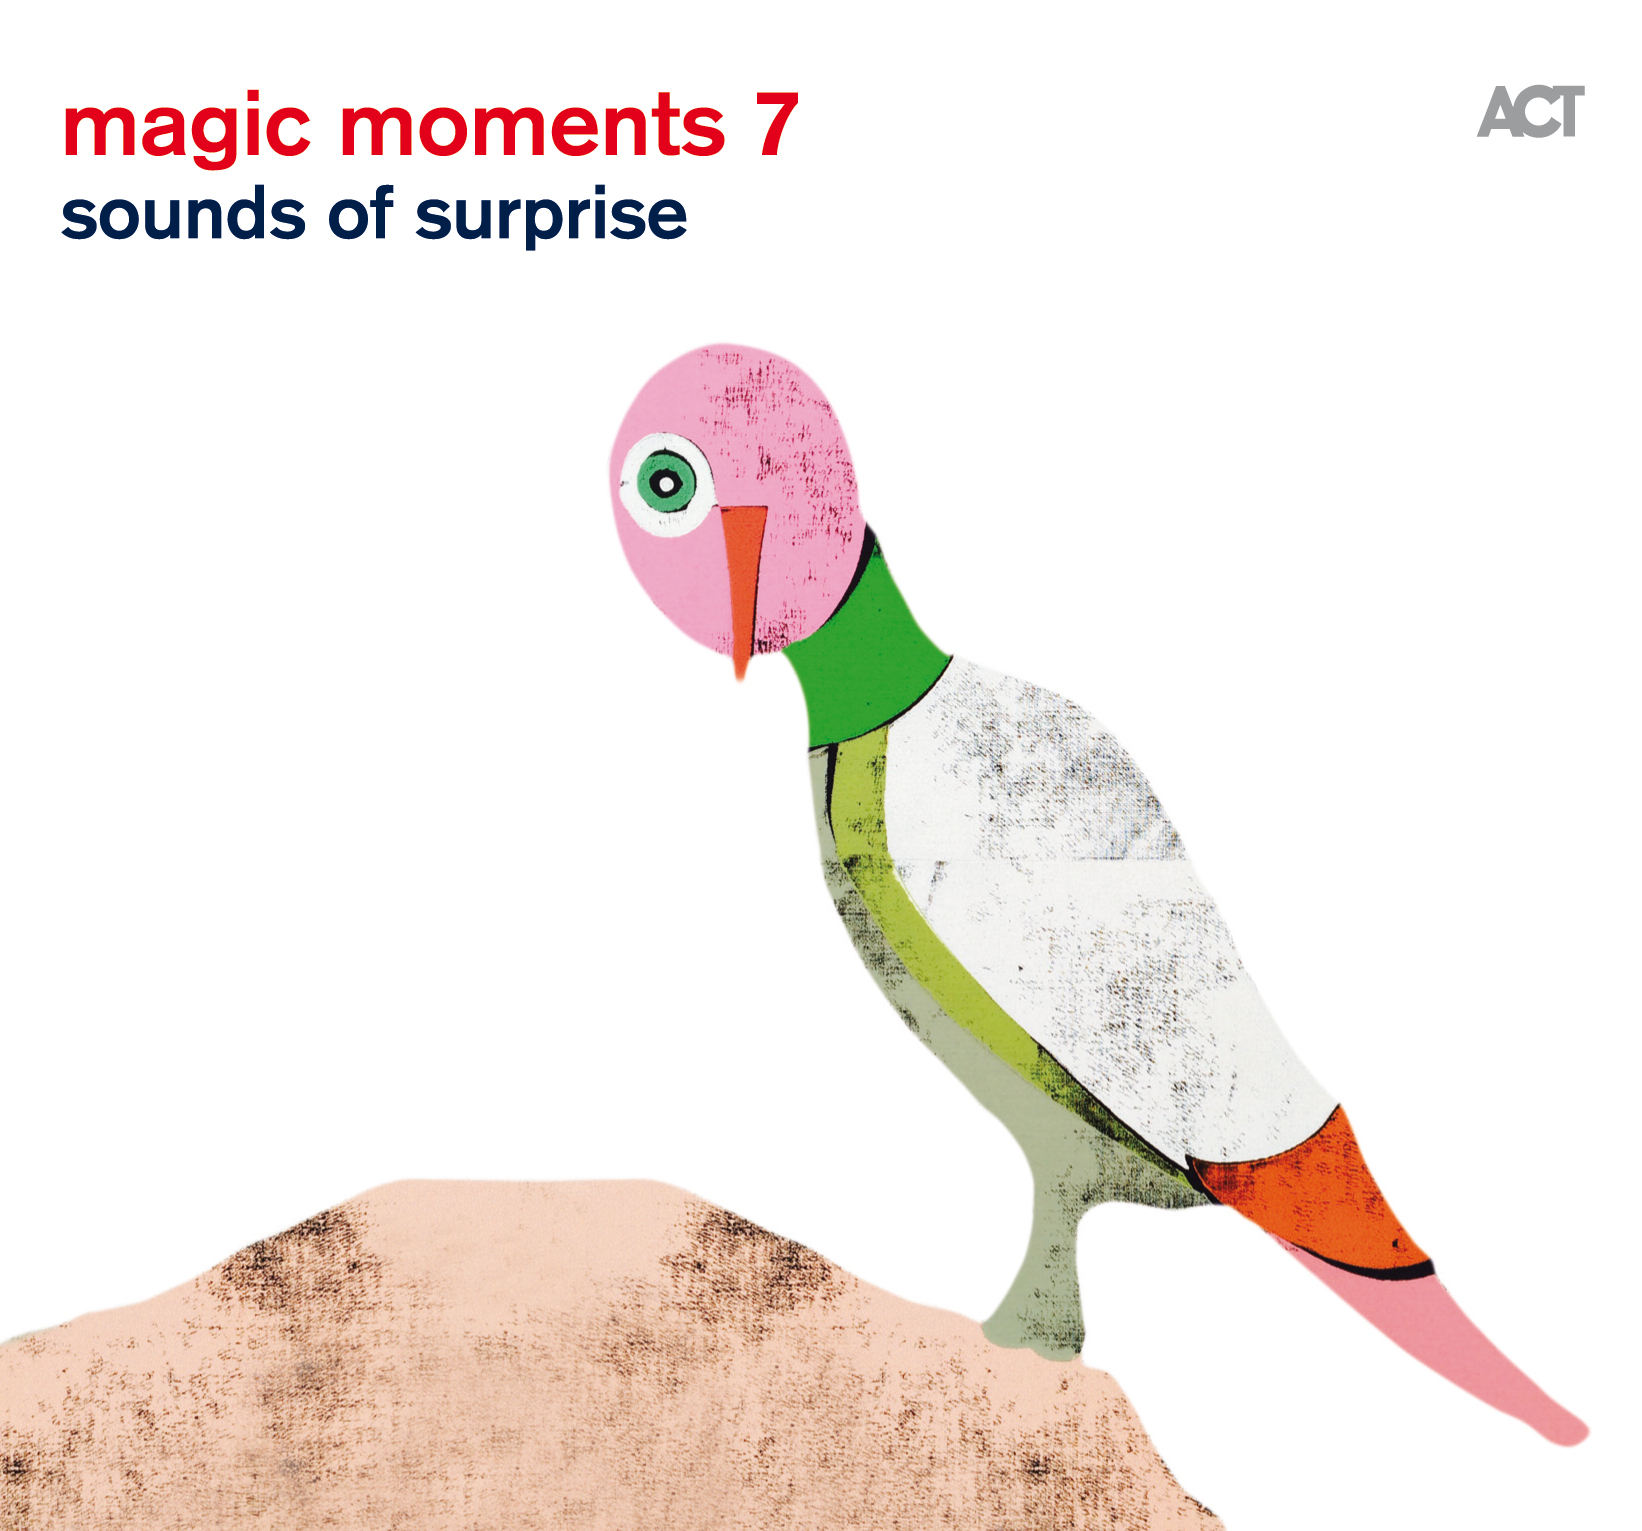 MAGIC MOMENTS 7 - SOUNDS OF SURPRISE